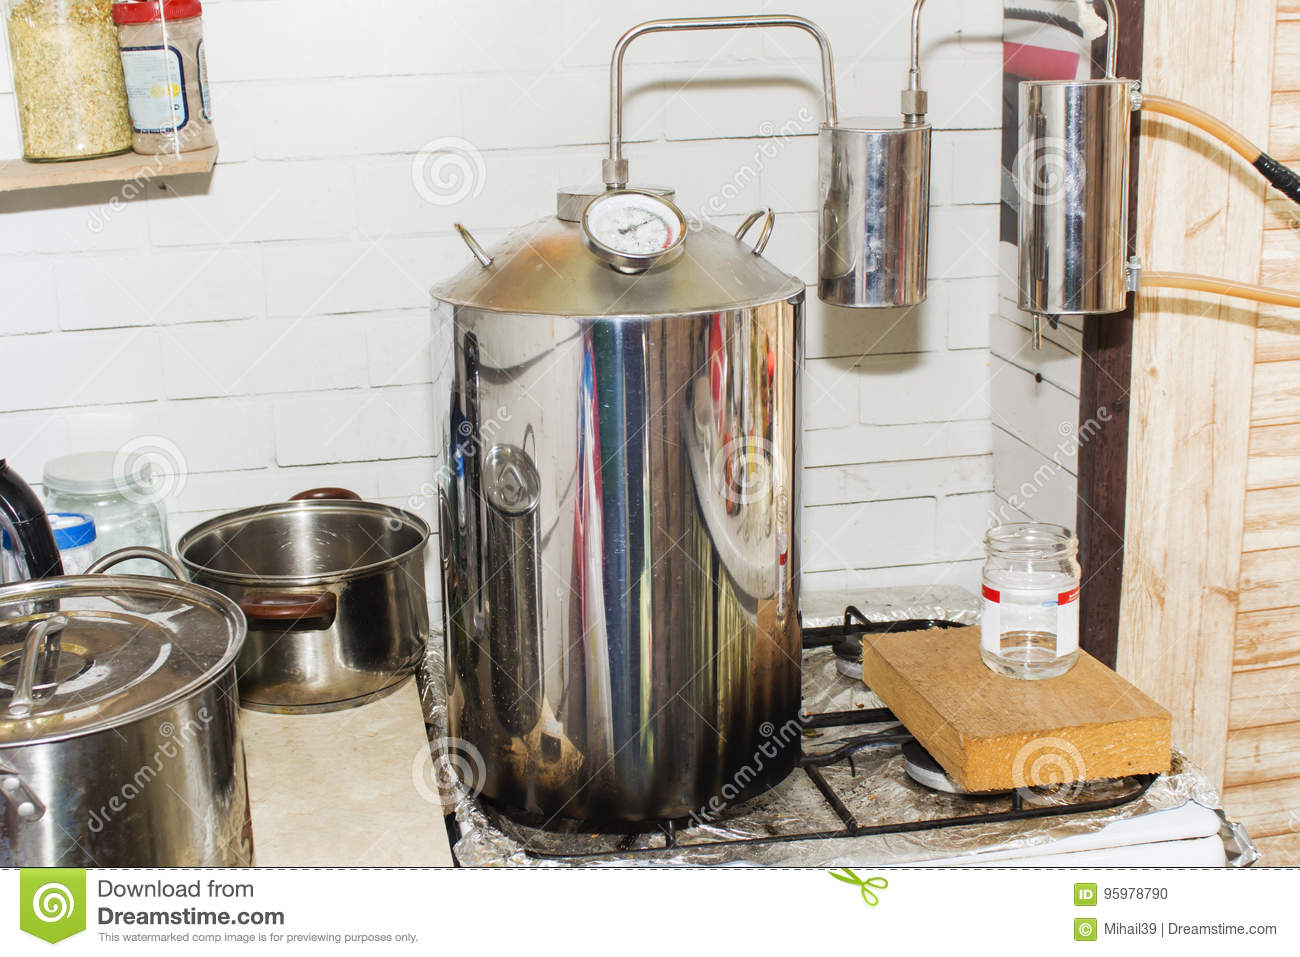 Moonshine still in action, at home